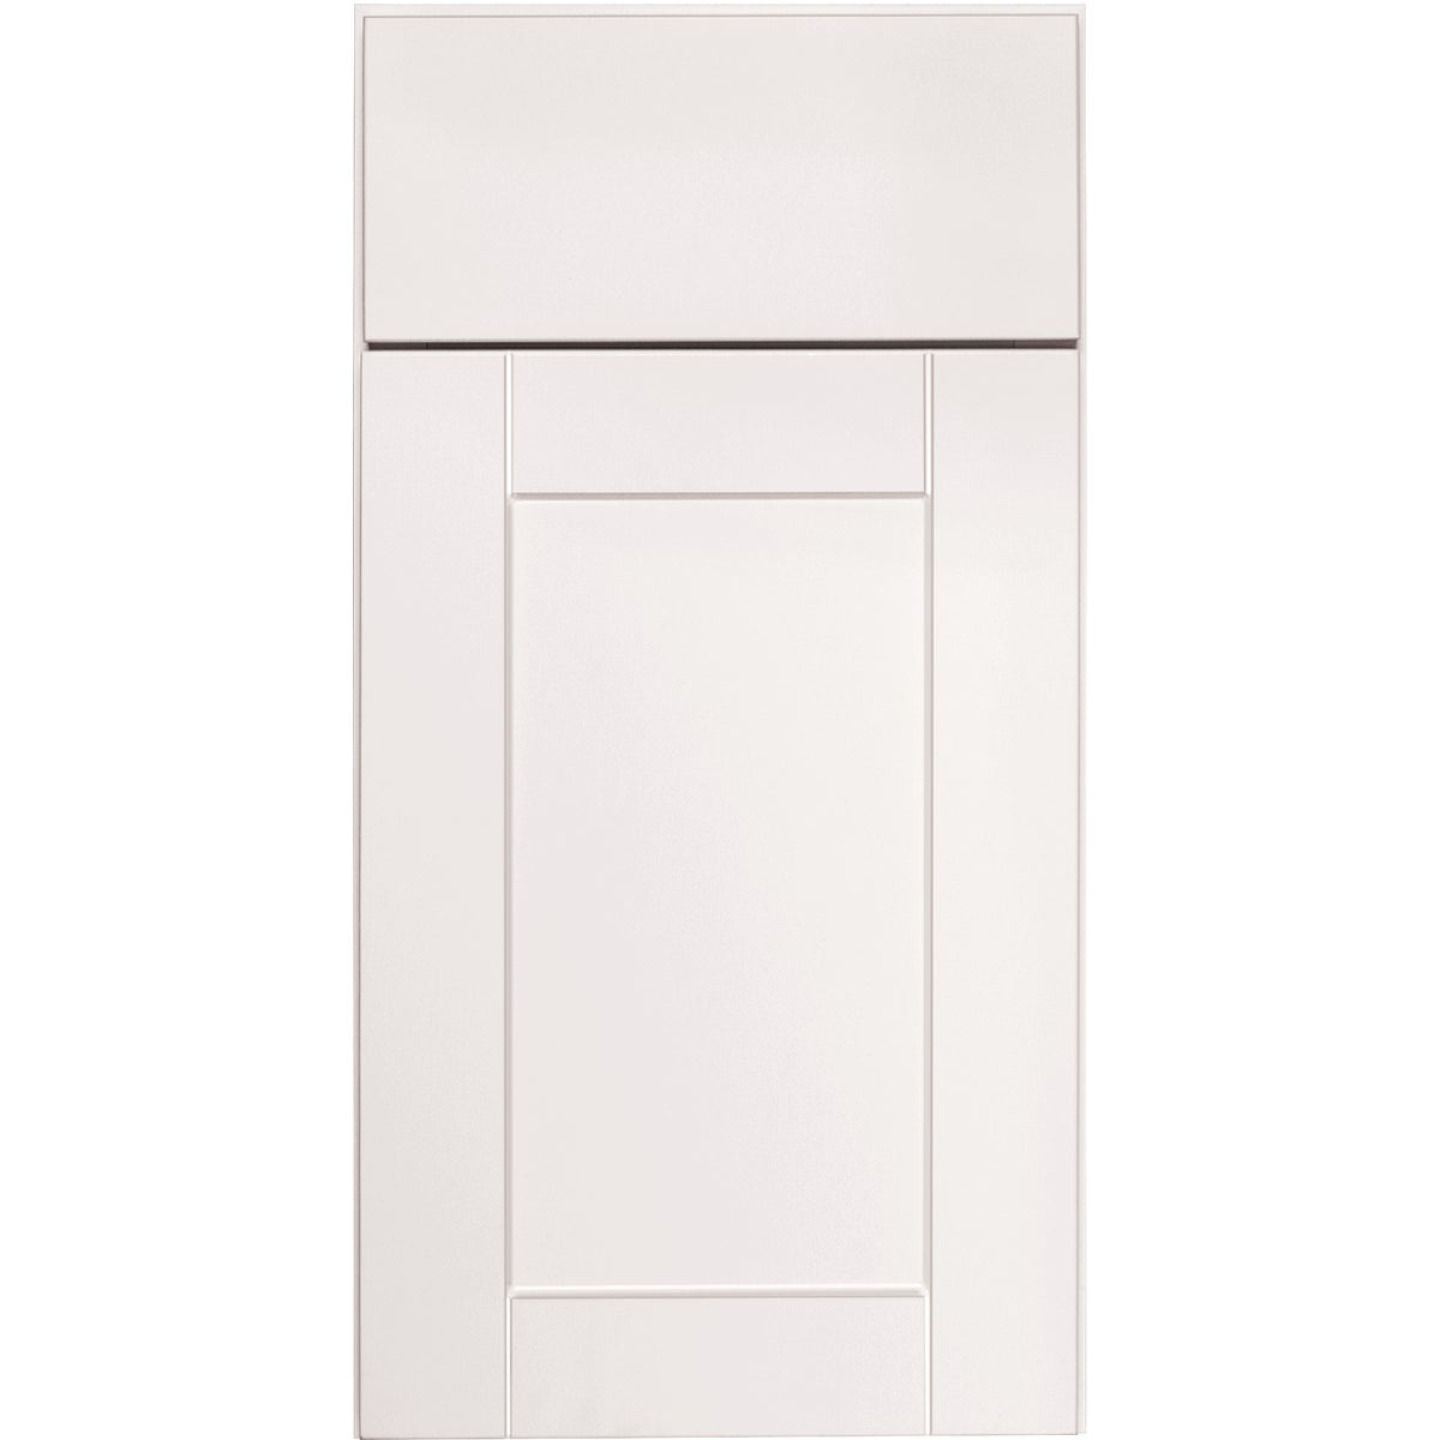 Continental Cabinets Andover Shaker 30 In. W x 34 In. H x 24 In. D White Thermofoil Base Kitchen Cabinet Image 3